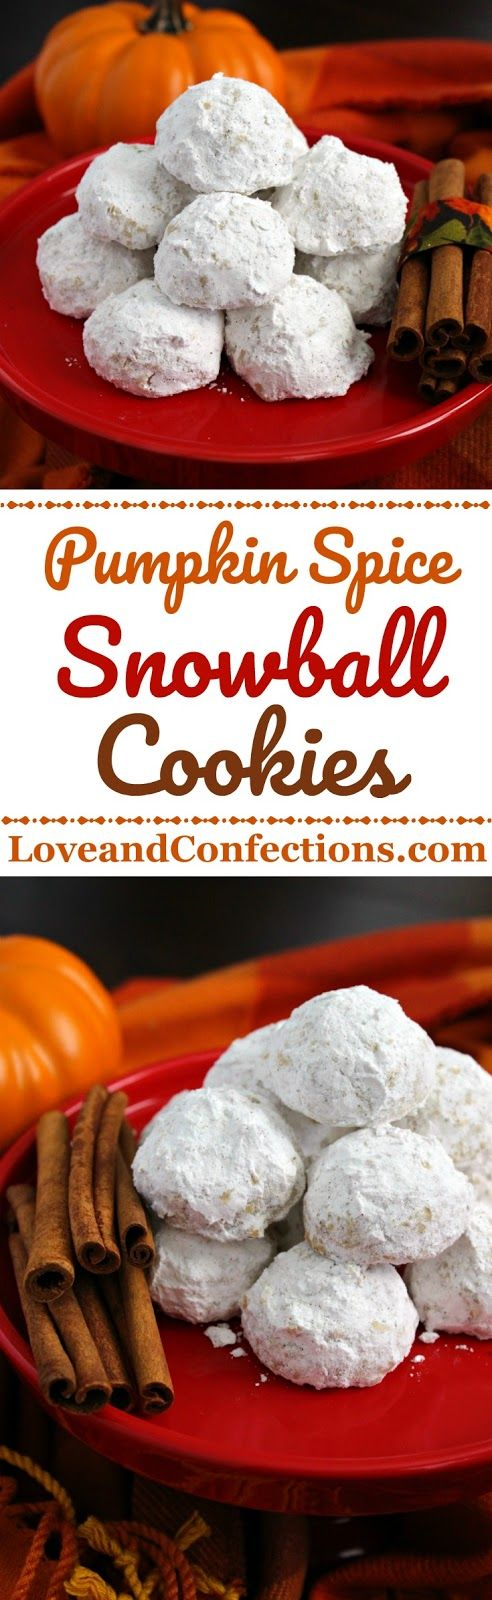 Pumpkin Pie Spice Snowball Cookies from LoveandConfections.com #PumpkinWeek #sponsored by @dixiecrystals